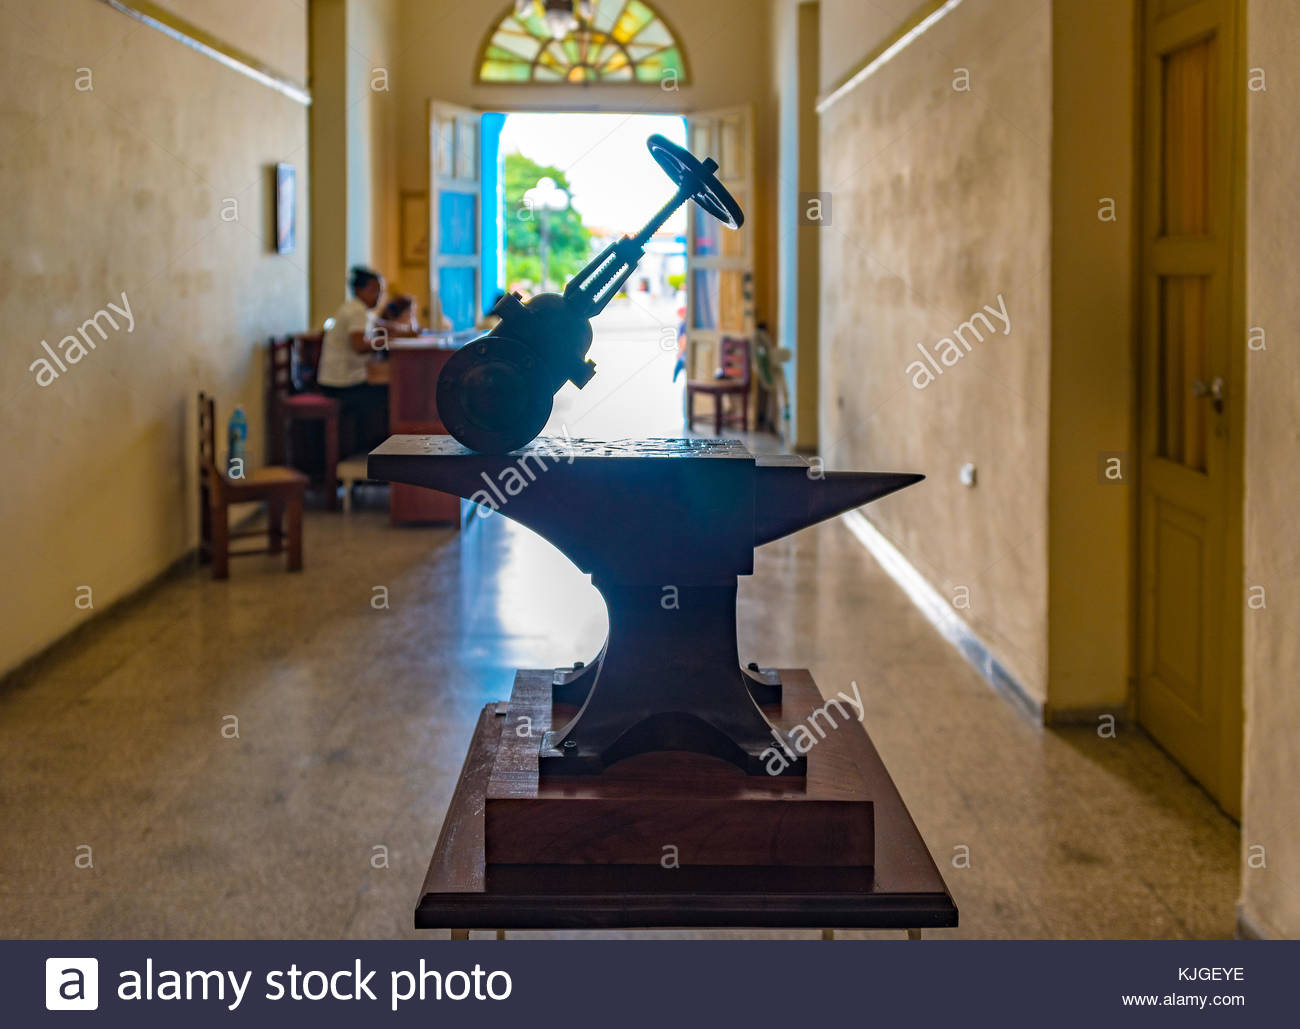 Provincial Museum entrance. There is a sculpture of at the entrance and receptionists seating as they wait for visitors - Stock Image